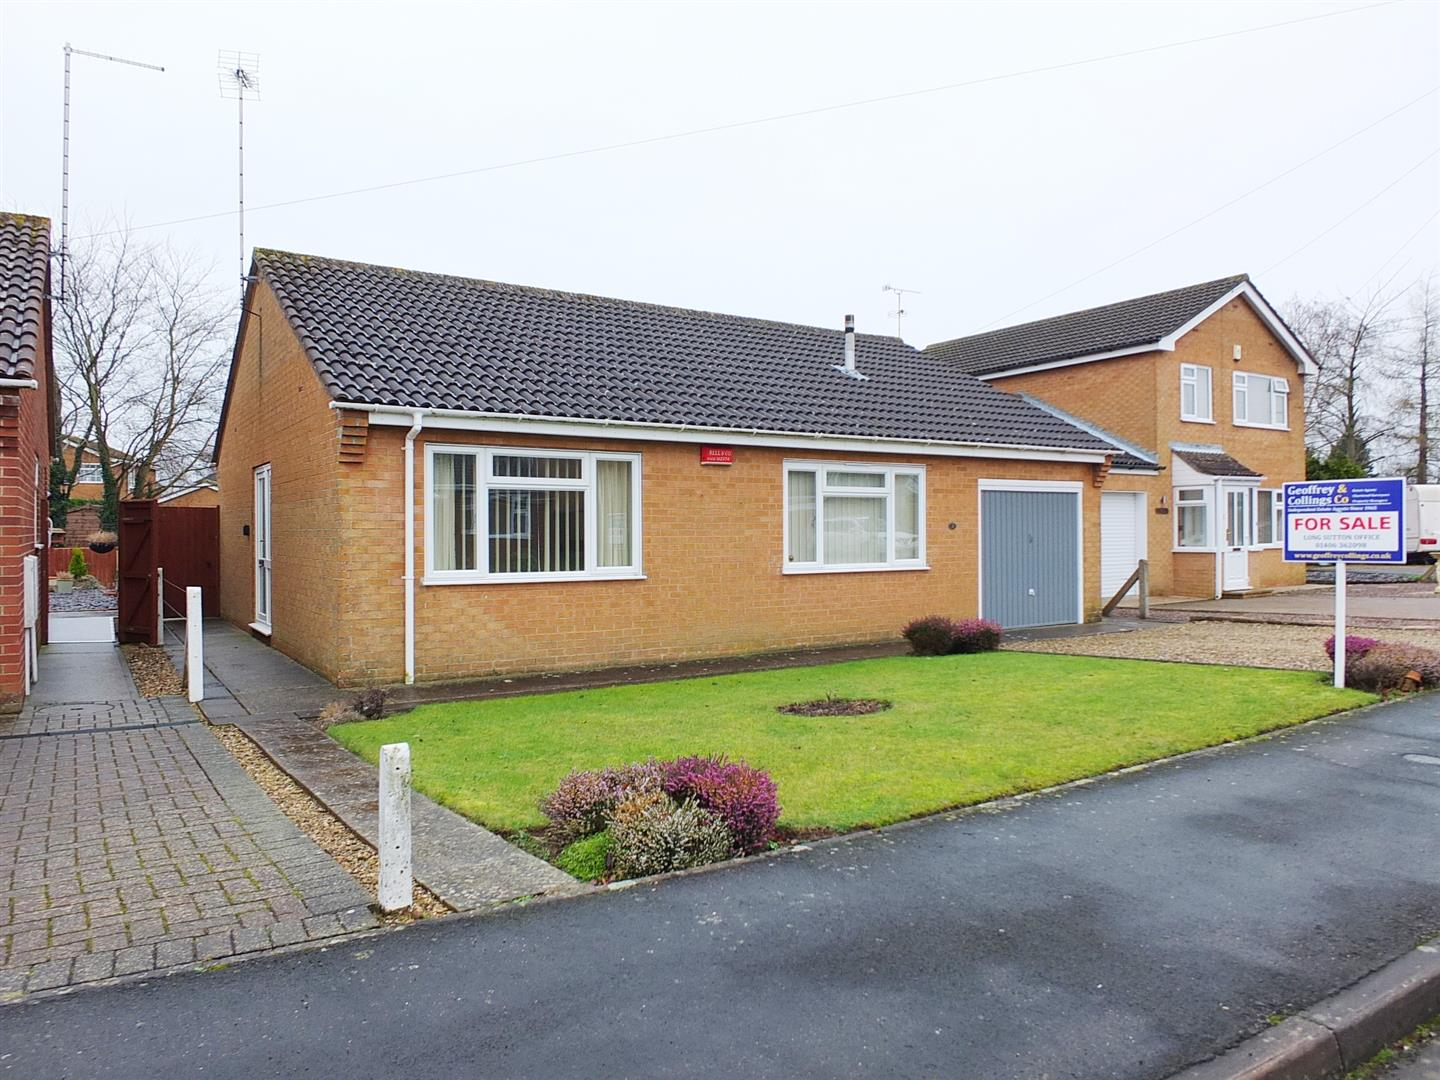 2 bed detached bungalow for sale in Church Green, Long Sutton Spalding, PE12